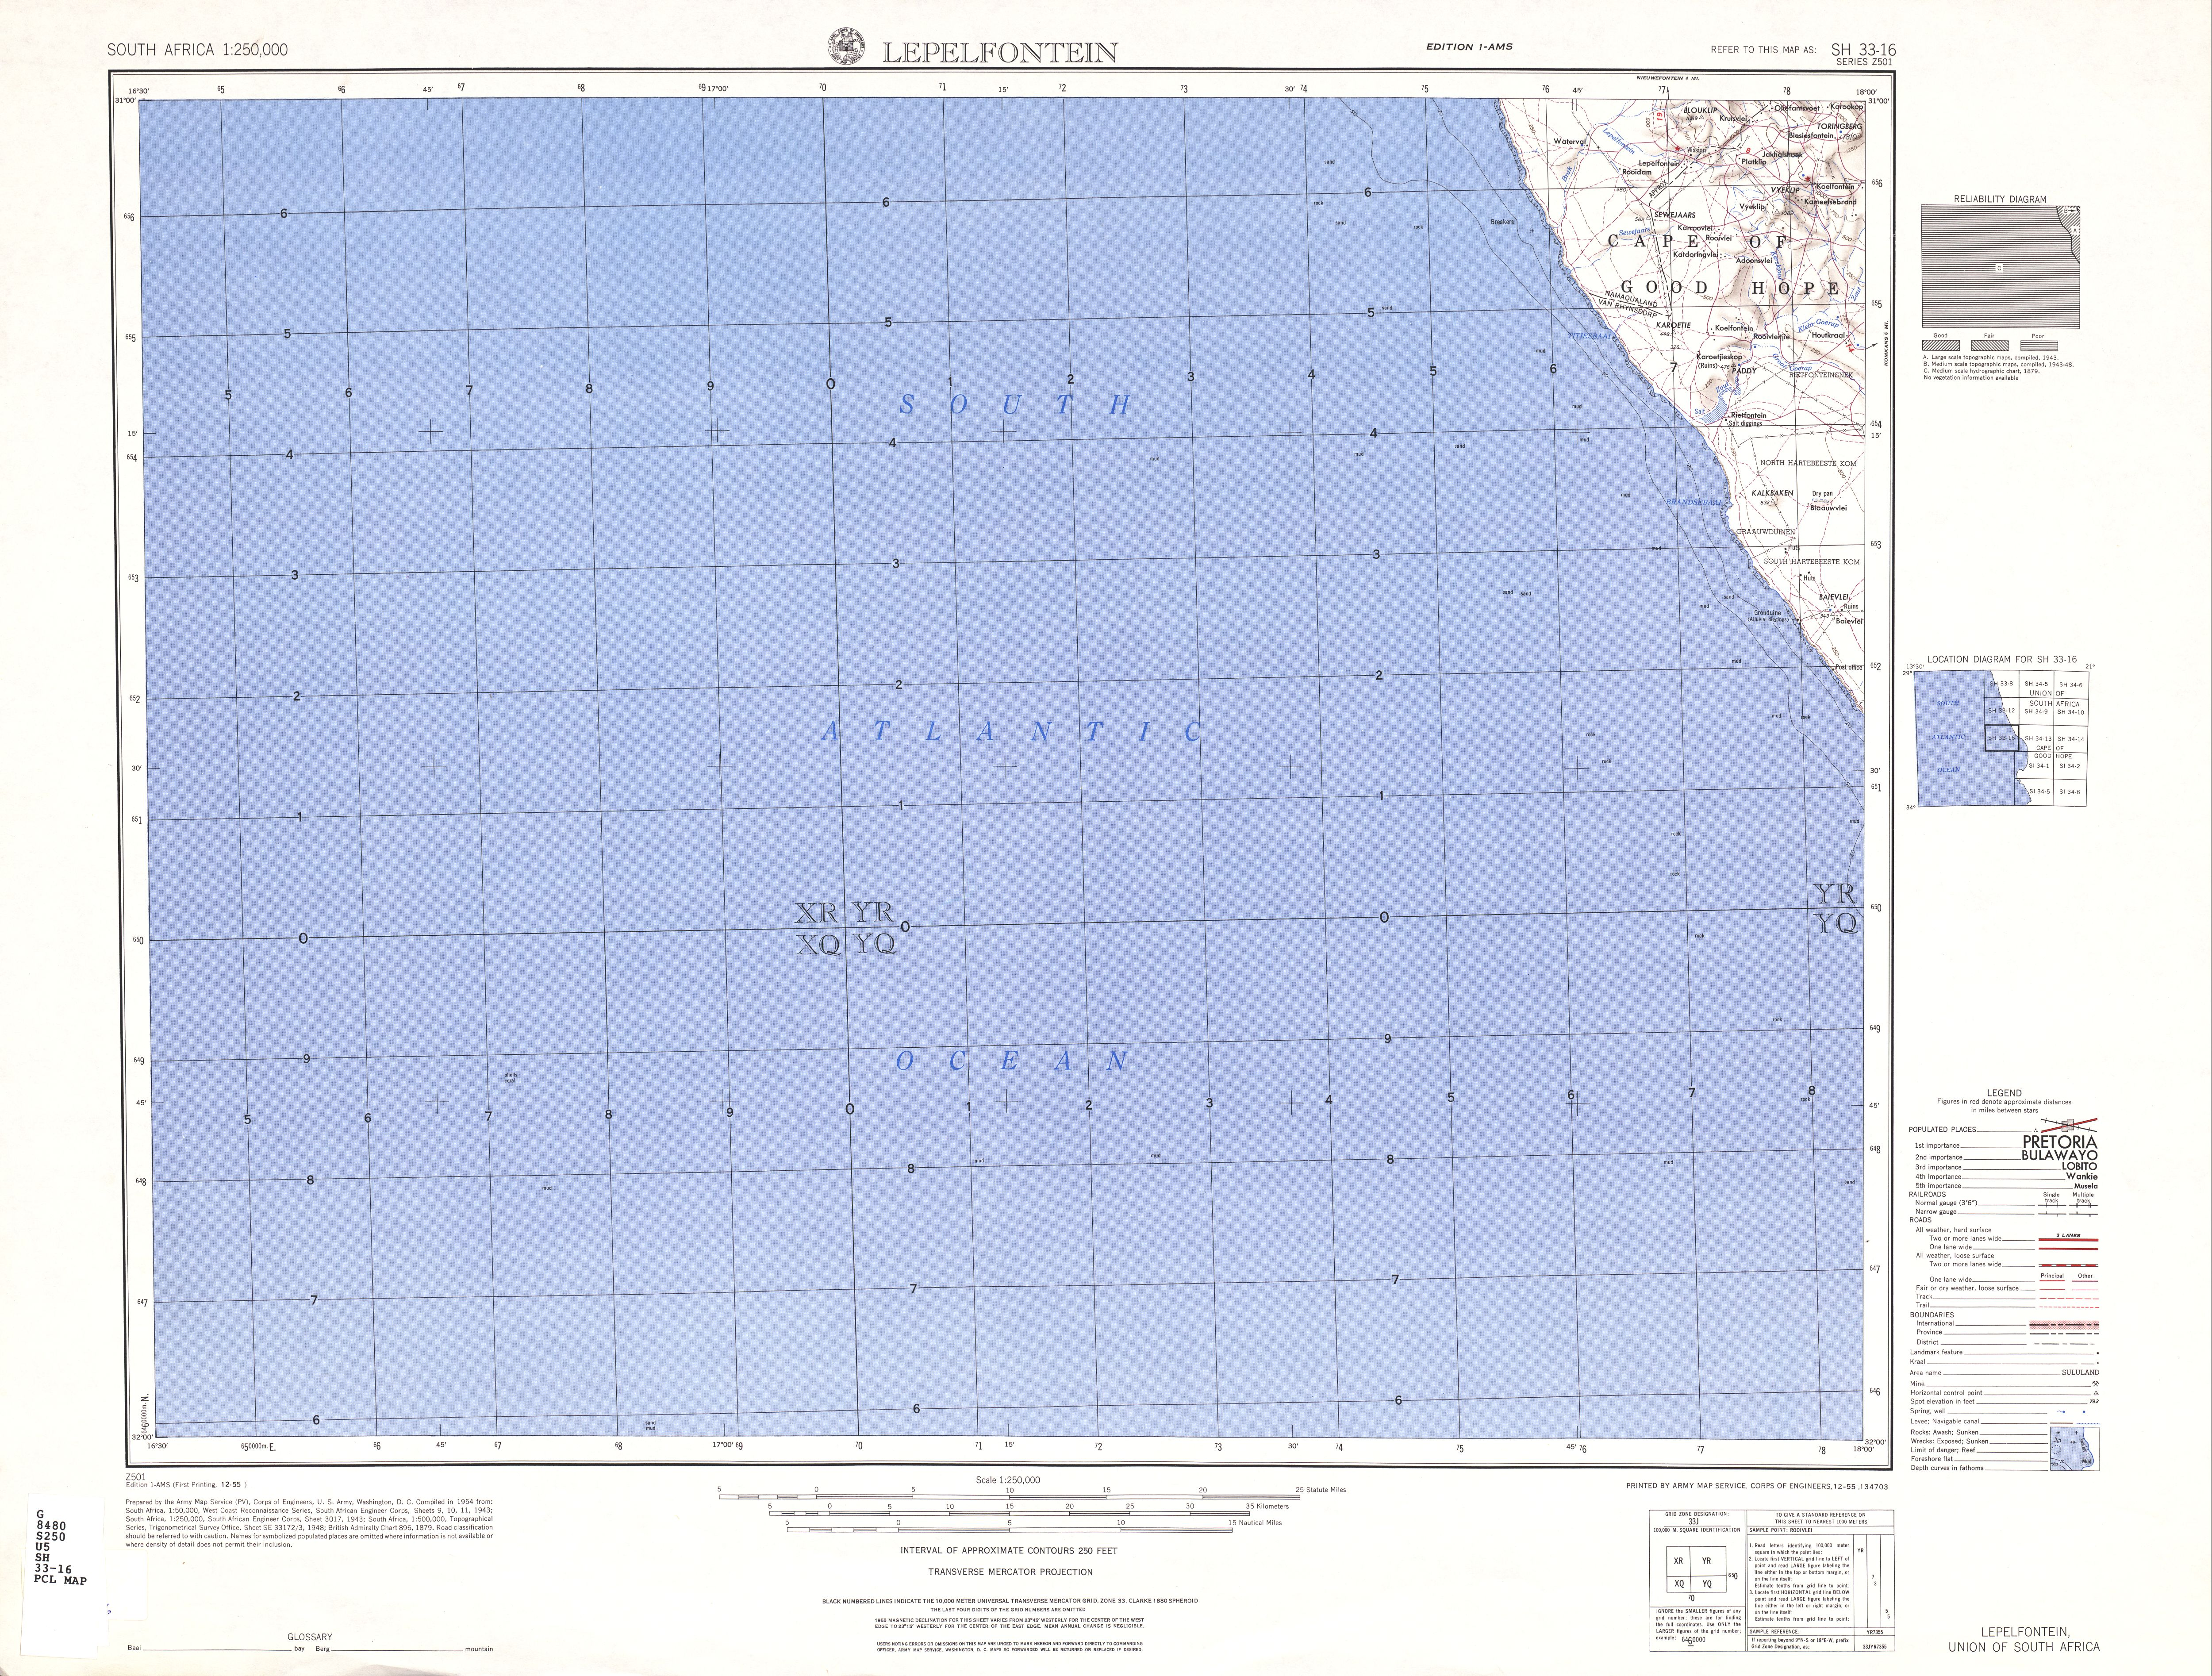 Lepelfontein Topographic Map Sheet, Southern Africa 1954